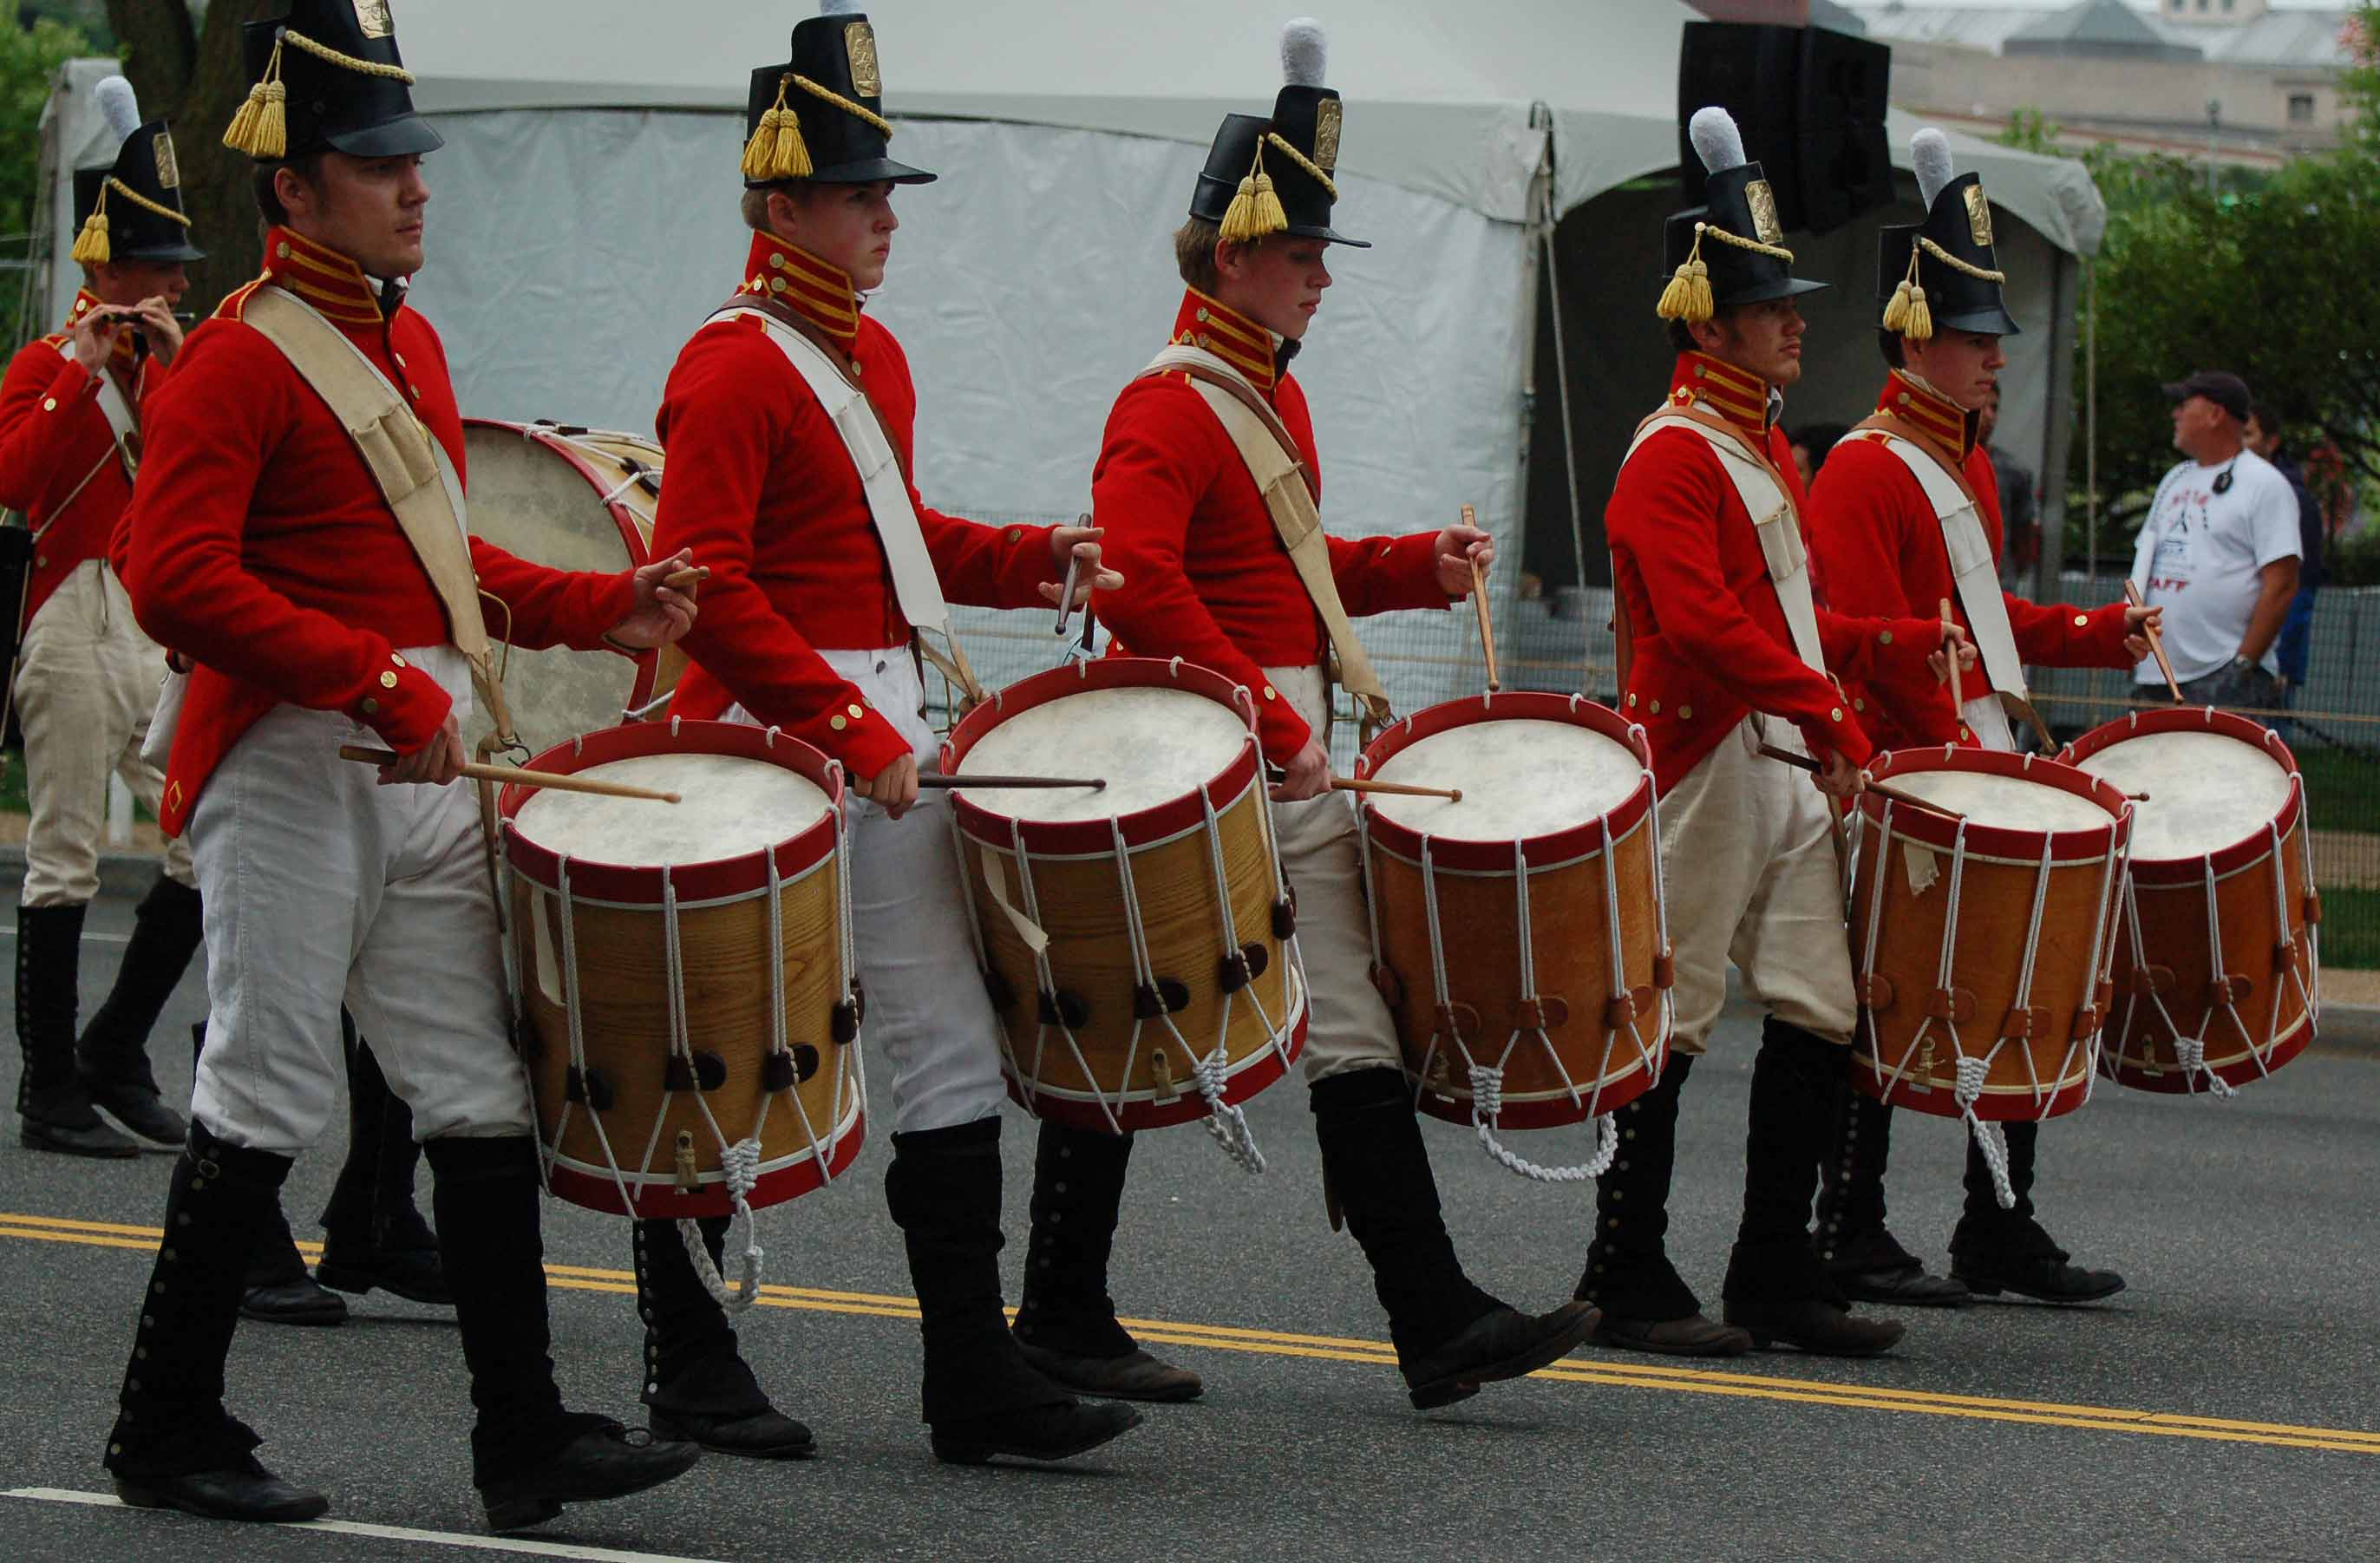 Fort McHenry Fife and Drum Corps in Washington DC July 4 2016